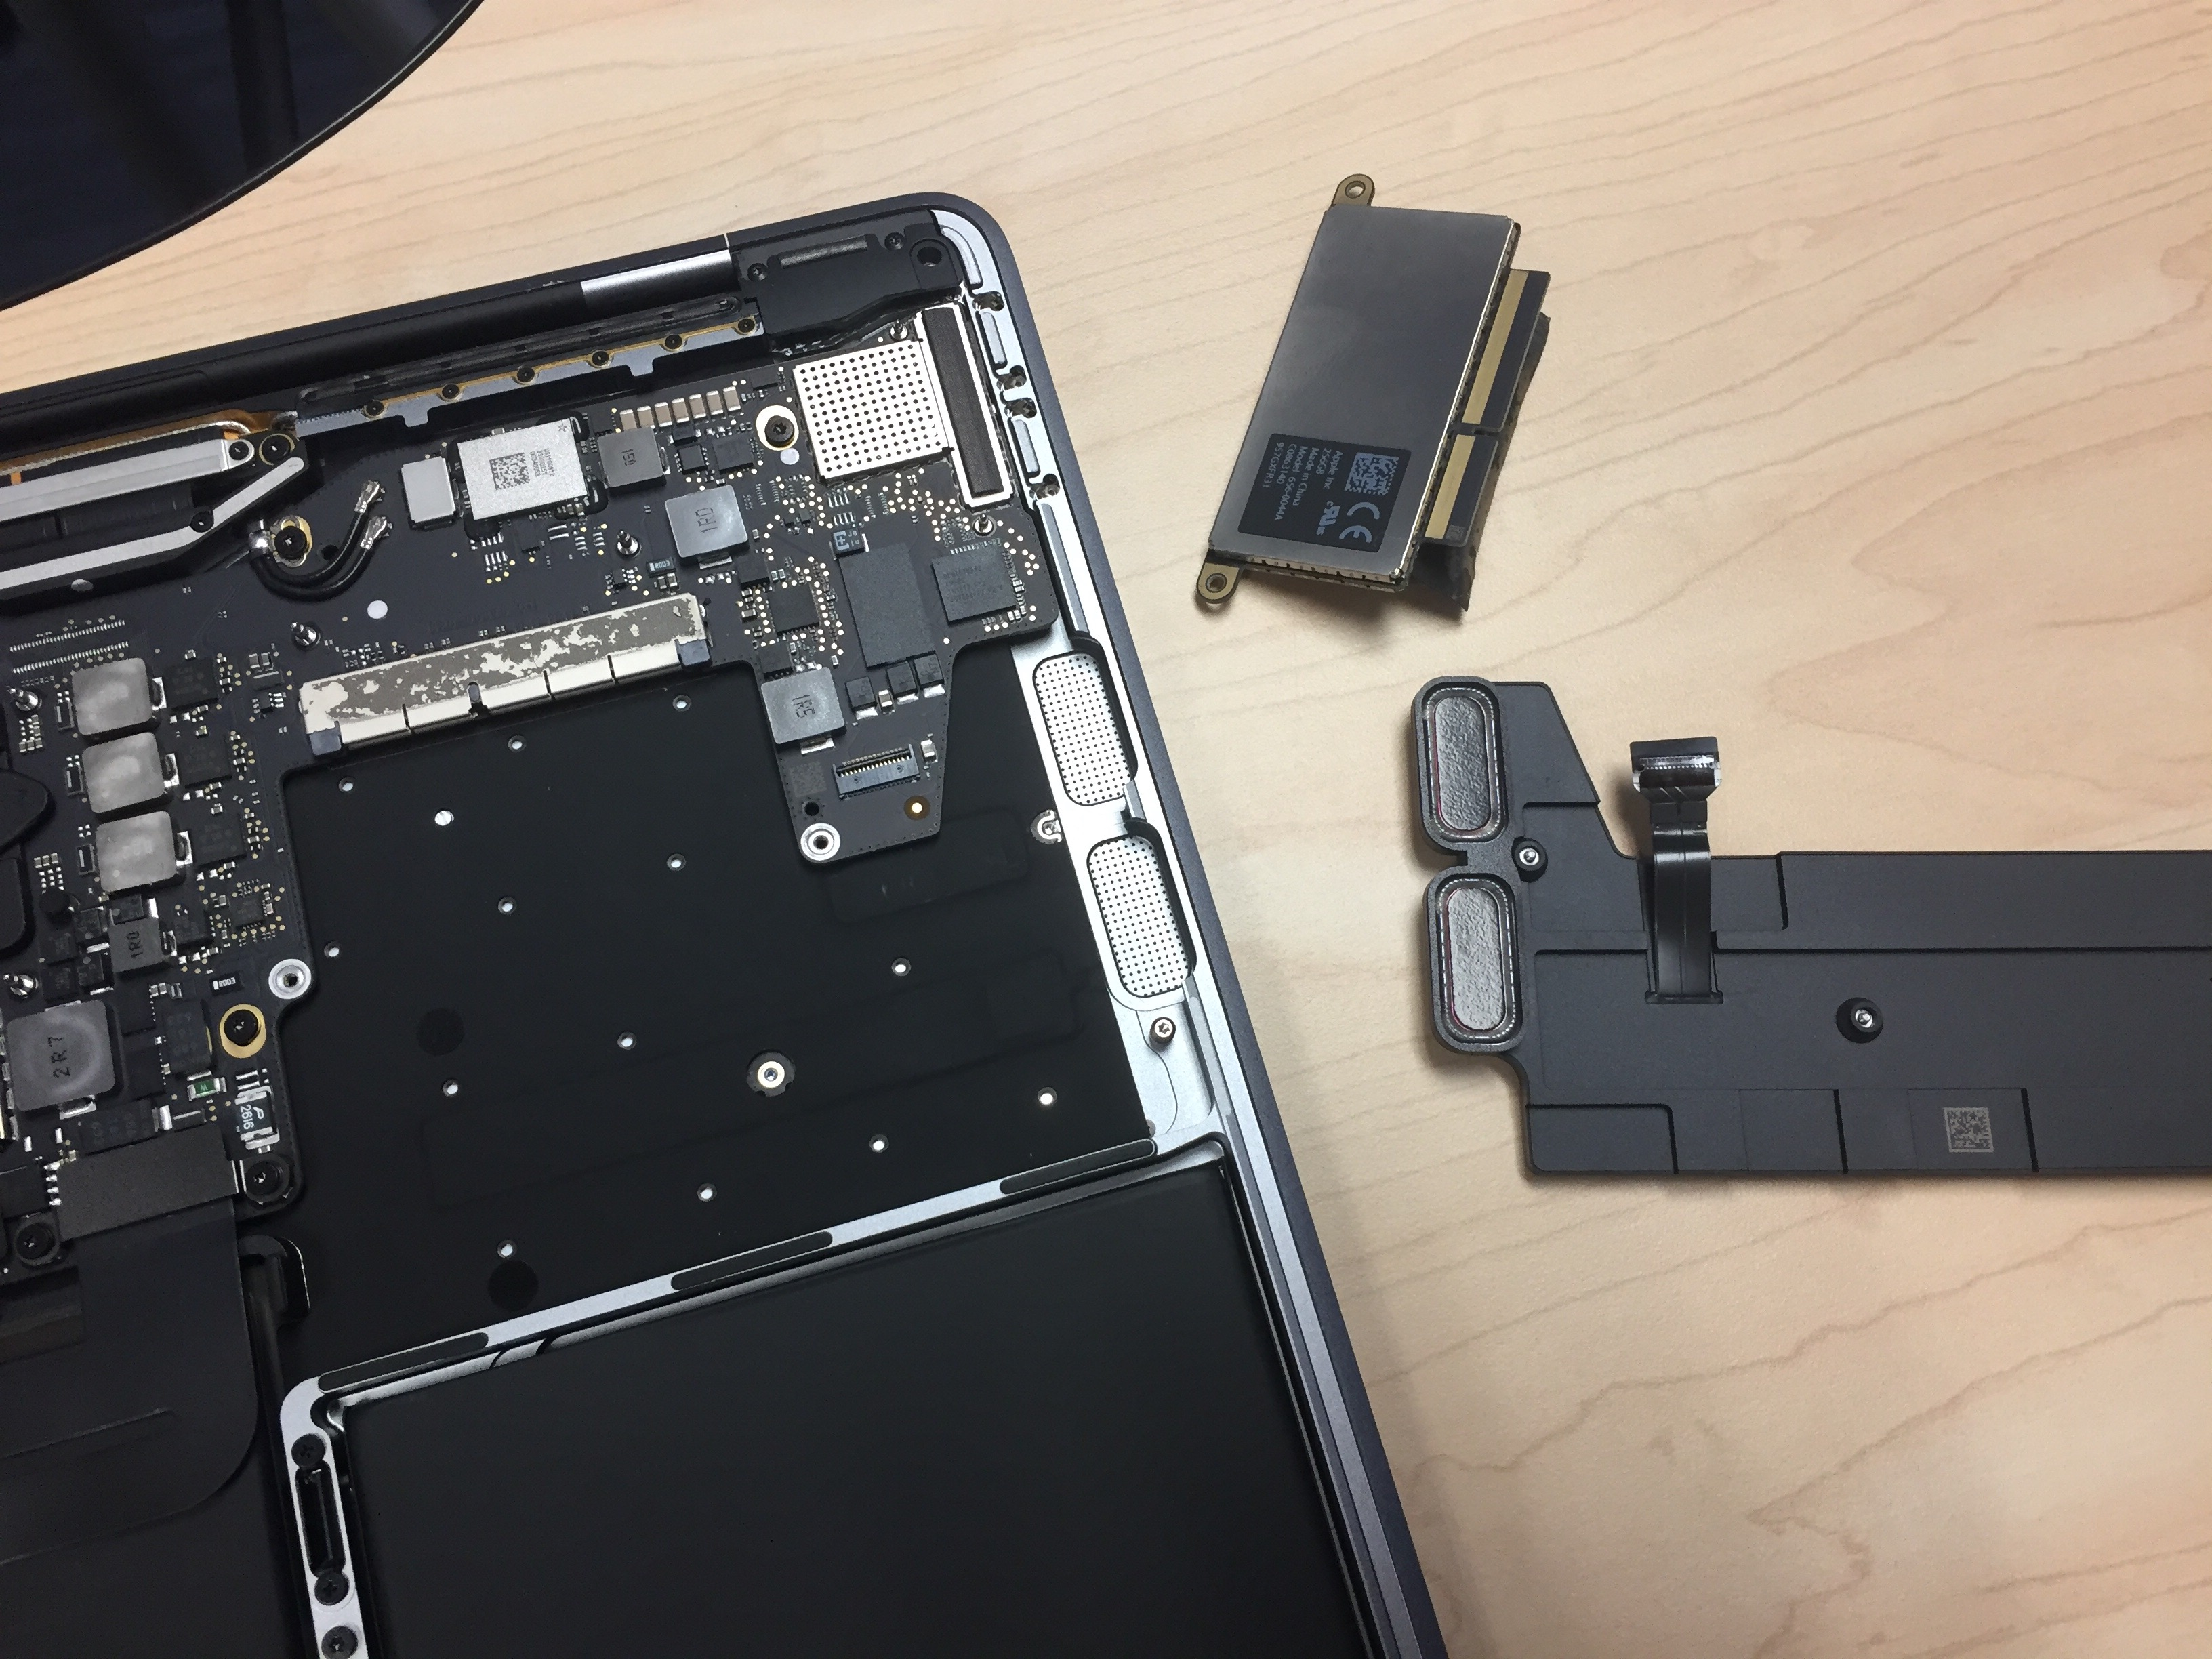 SSD In Late 2016 'Entry-Level' MacBook Pro Removable